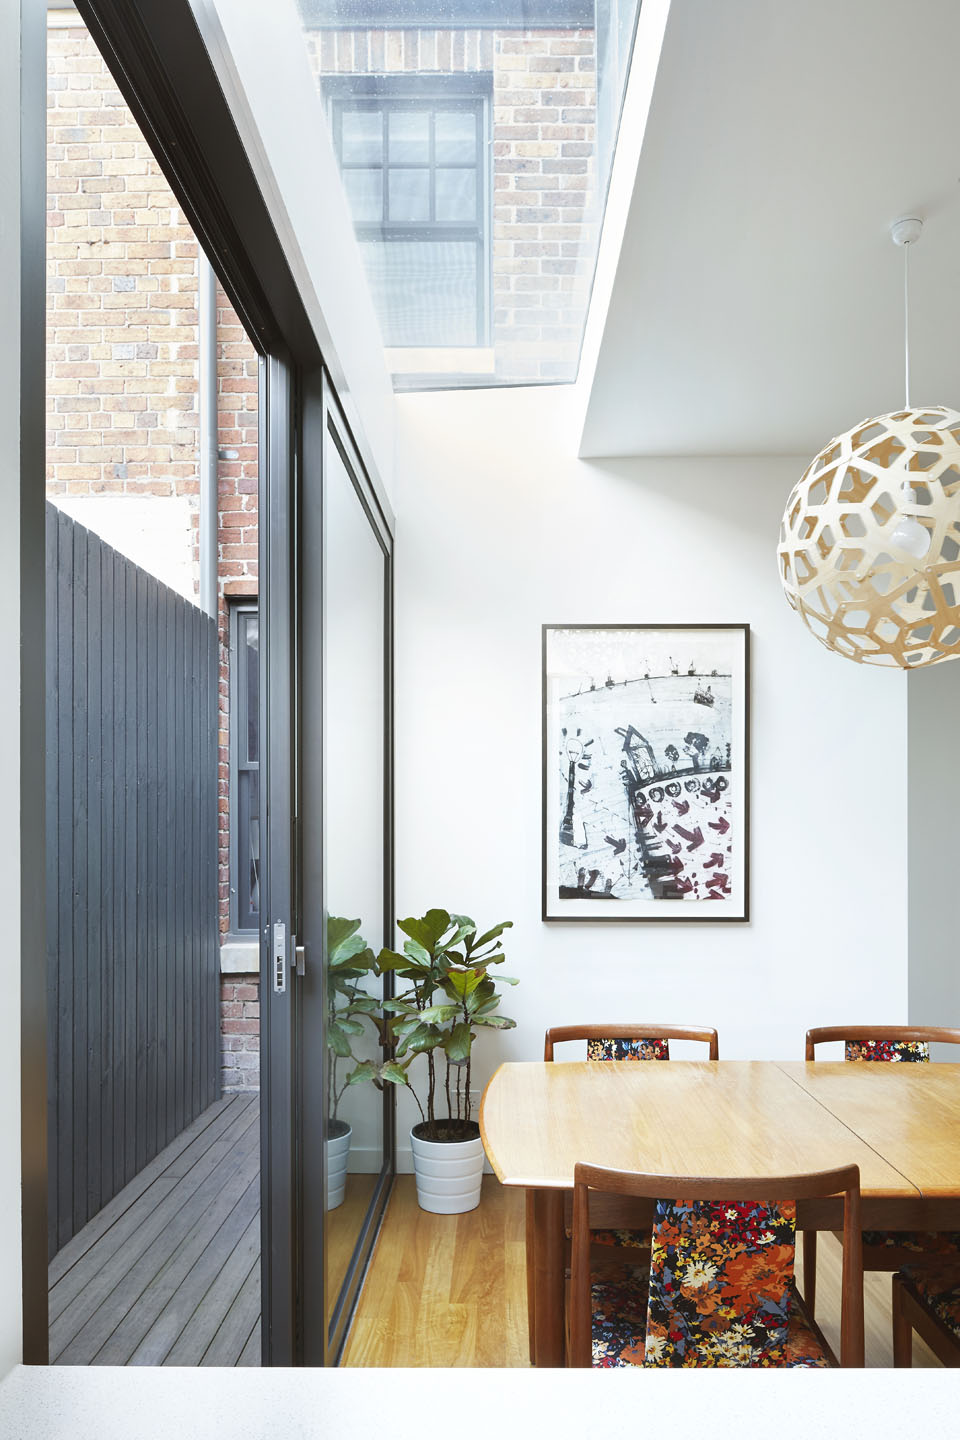 Nic Owen Architects